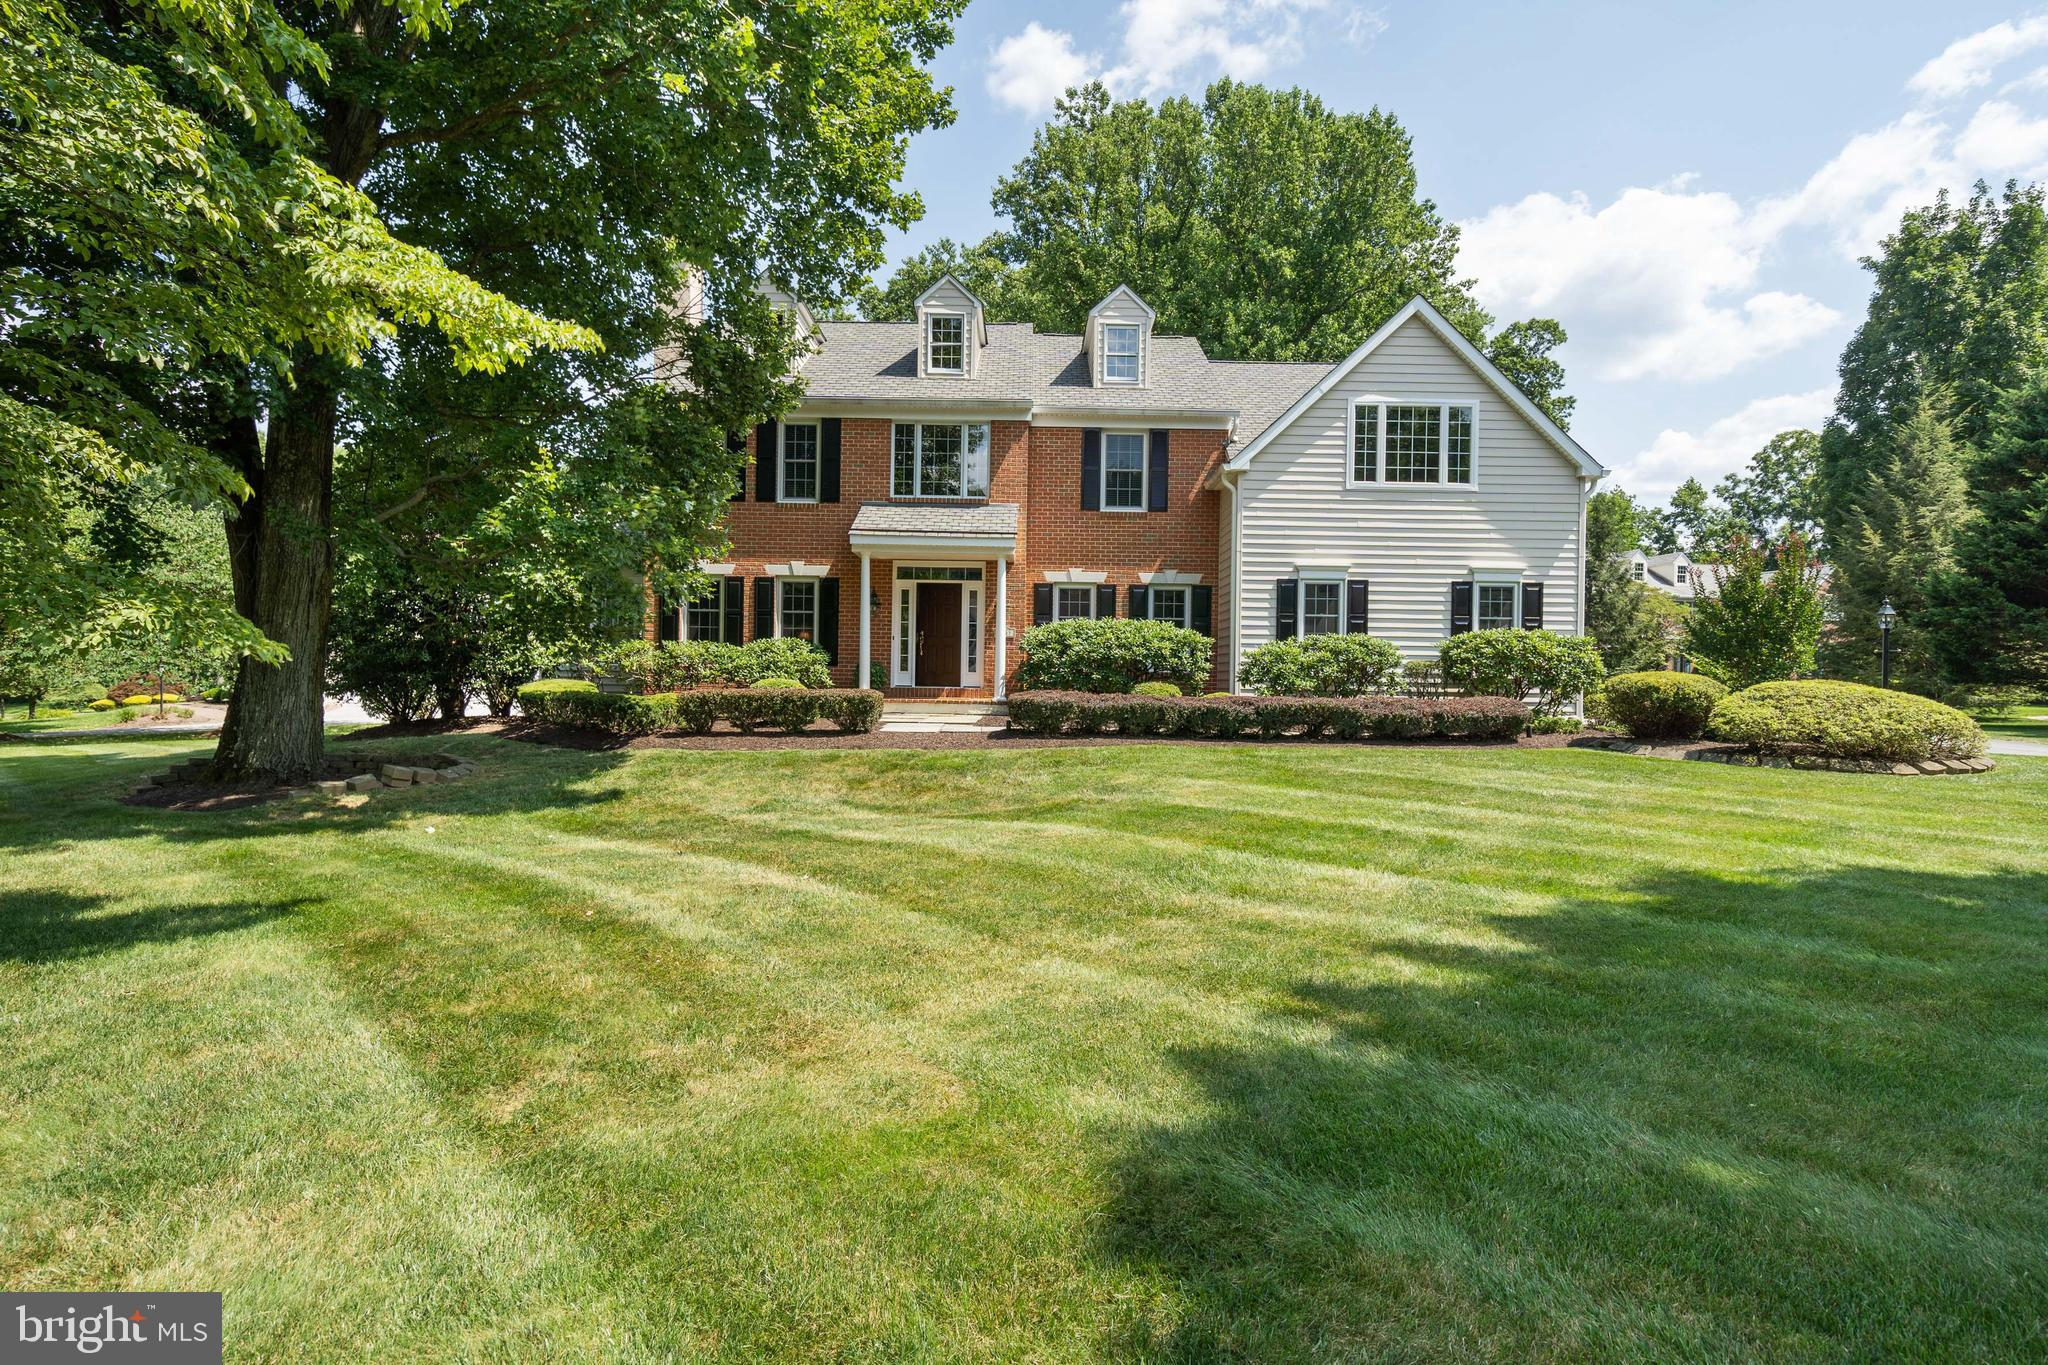 As you enter through the front door into the open and bright two-story foyer there is wainscoting and chair rail with gleaming oak hardwood flooring on most of the 1st floor. To your left is the formal living room with crown molding, wood burning fire place with marble surround and hearth as well as ceiling accent light above the mantle. Lovely custom window treatments are included. Off of this room you step down into the spacious bright sun room complimented by the lighted ceiling fan. The formal dining room to the right of the foyer is complimented with wainscoting, crown molding, electric wall sconces and beautiful custom window treatments. Continuing you come to the kitchen drenched by sunlight. With open view and same wonderful brightness you also see family room a little to left. Large kitchen stainless steel, high-end appliances (Wolfe wall oven, Thermador cooktop, Bosch refrigerator). Heptagon shaped Island, deep pantry closet. Back staircase located here. Anderson sliding door leads you to new composite deck with vinyl railing for low maintenance. Just off the kitchen is laundry room with large coat closet and front loading washer and dryer (Electrolux) with laundry pedestal with storage drawers. Entrance to 2 car garage with automatic openers. (Recently freshly painted). Door to outside as well. Parking for 6 cars on property plus street. Kitchen opens through to family room brining this same bright and spacious feeling. Floor to ceiling stone wood burning fireplace with raised hearth. Additional entrance to deck via Anderson door is also found in this room. Complimented by a ceiling fan. Enter through the French doors into the library/office which features built in bookshelves w/lower cabinets along with window seat and ceiling fan where you'll discover a cozy retreat. As you come to the 2nd floor you will come to appreciate 2 zone heating/AC. Which includes wall-to-wall carpeting and you'll find a stunning view of the family room and foyer from balcony. 